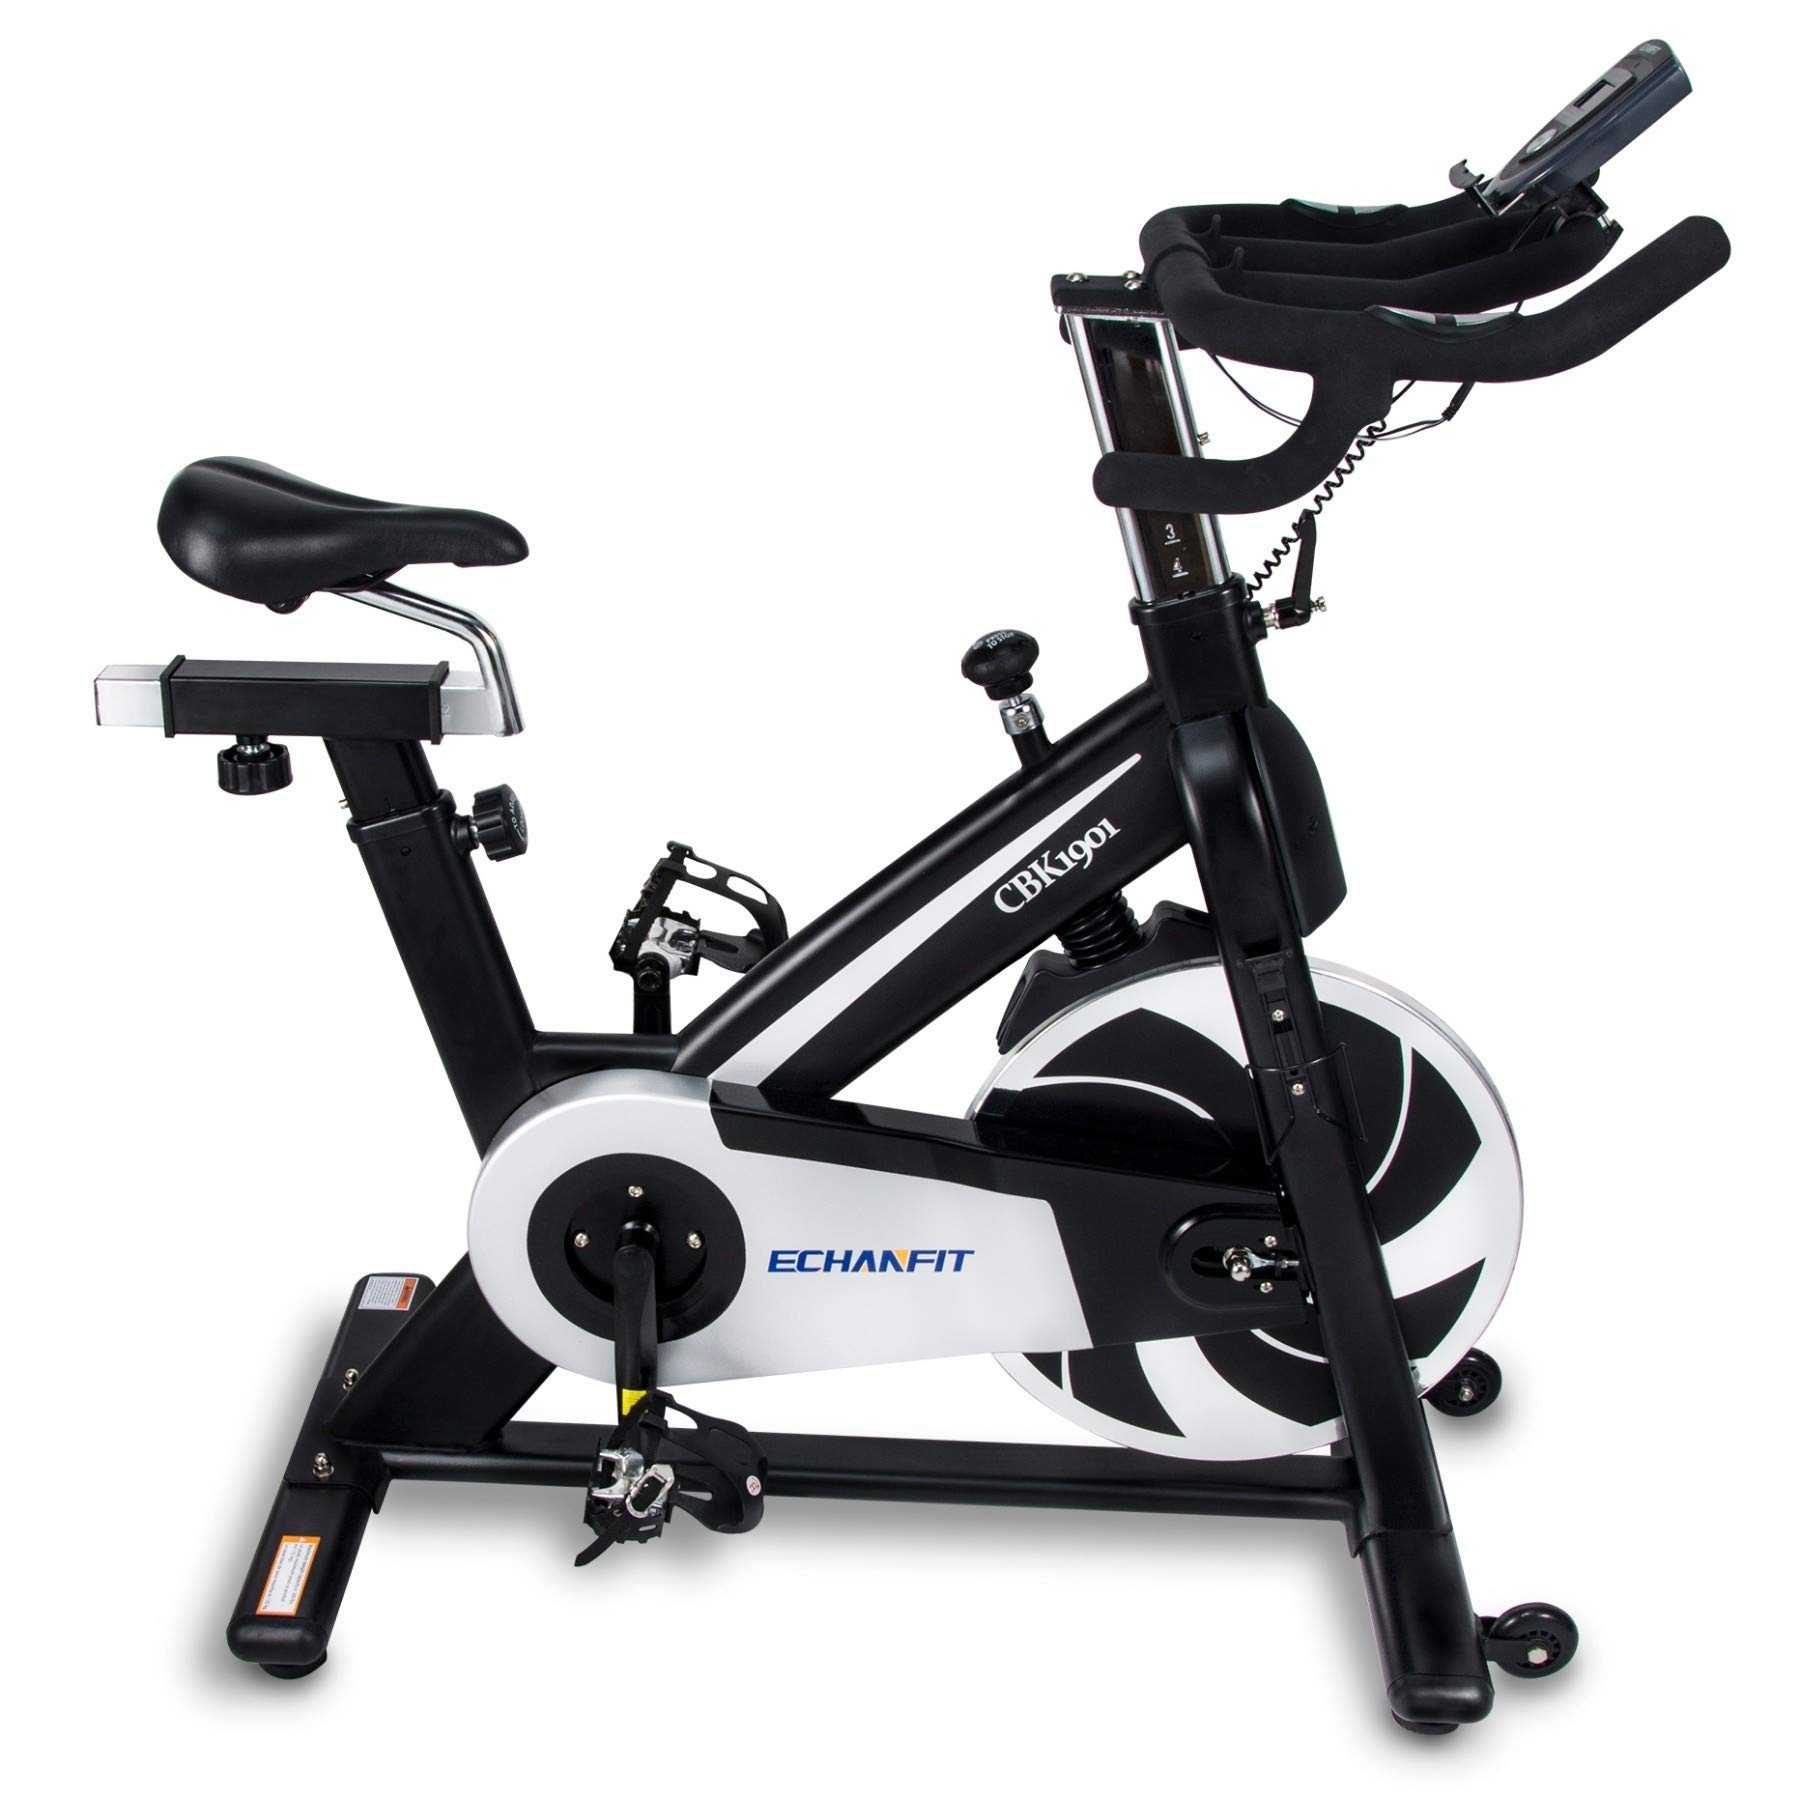 Echanfit affordable indoor cycling bike